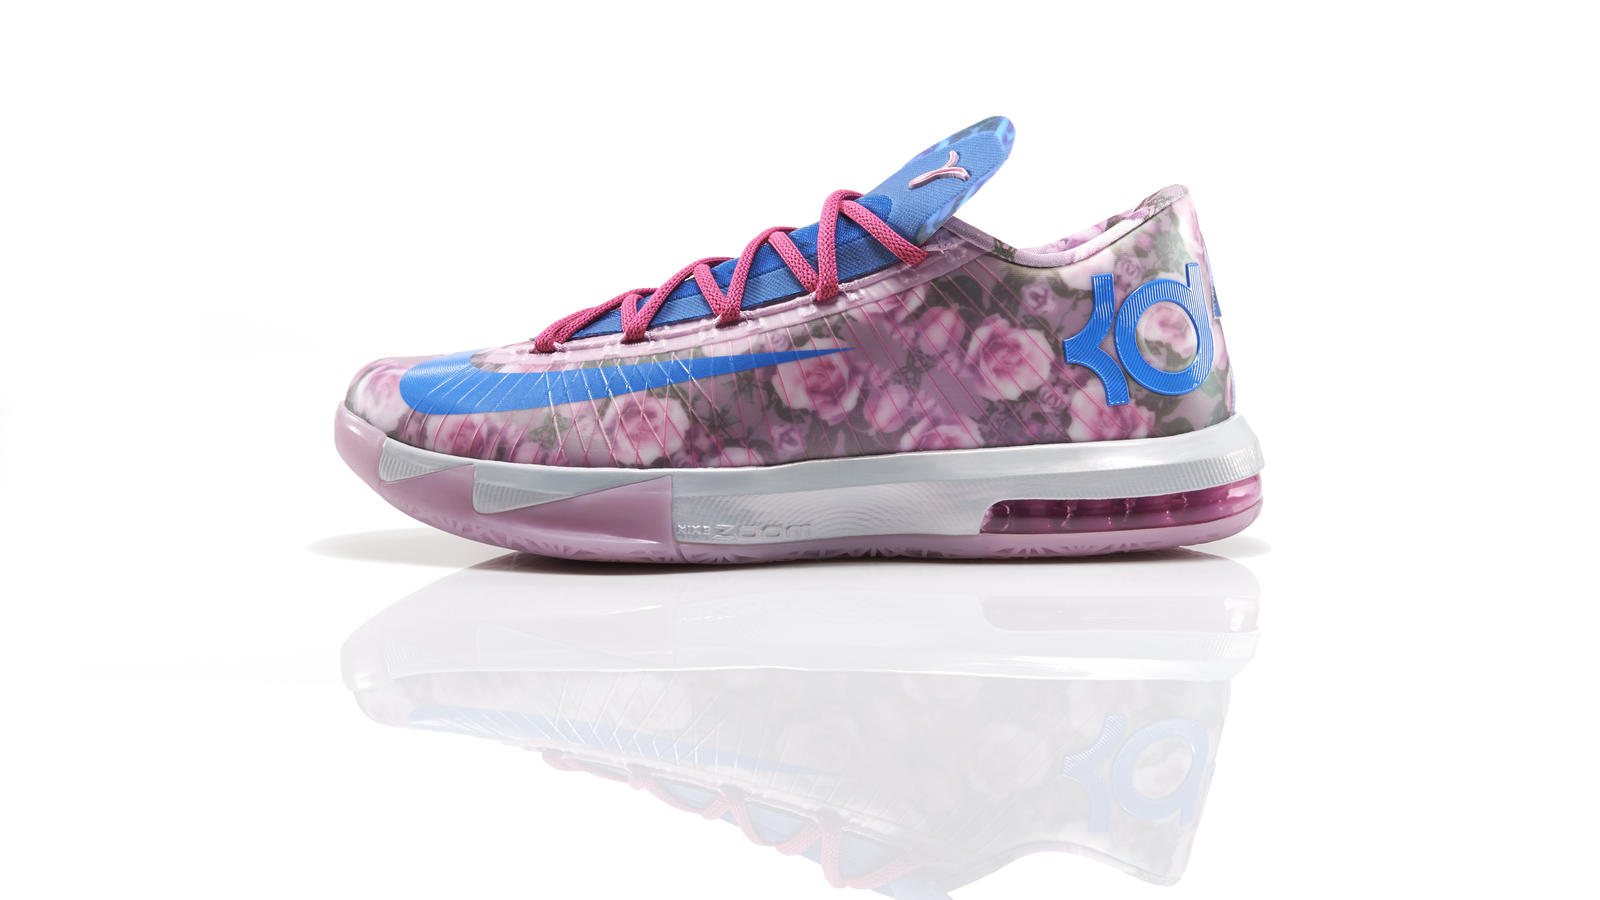 Honoring Kevin Durant's Late Aunt Pearl